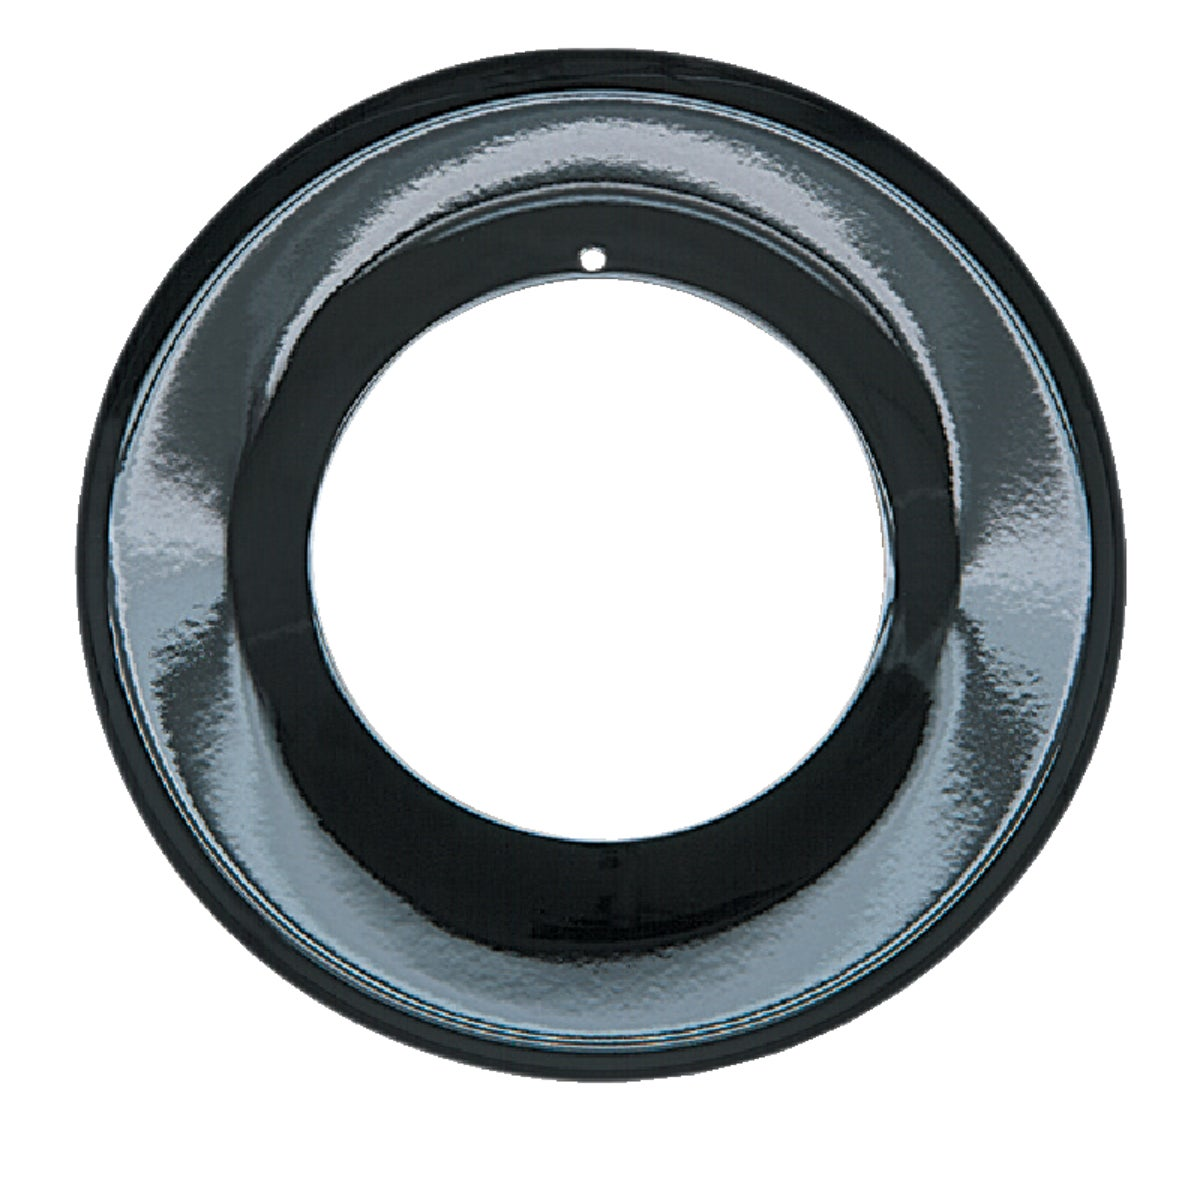 N/S ROUND GAS DRIP PAN - P-200 by Range Kleen Mfg Inc